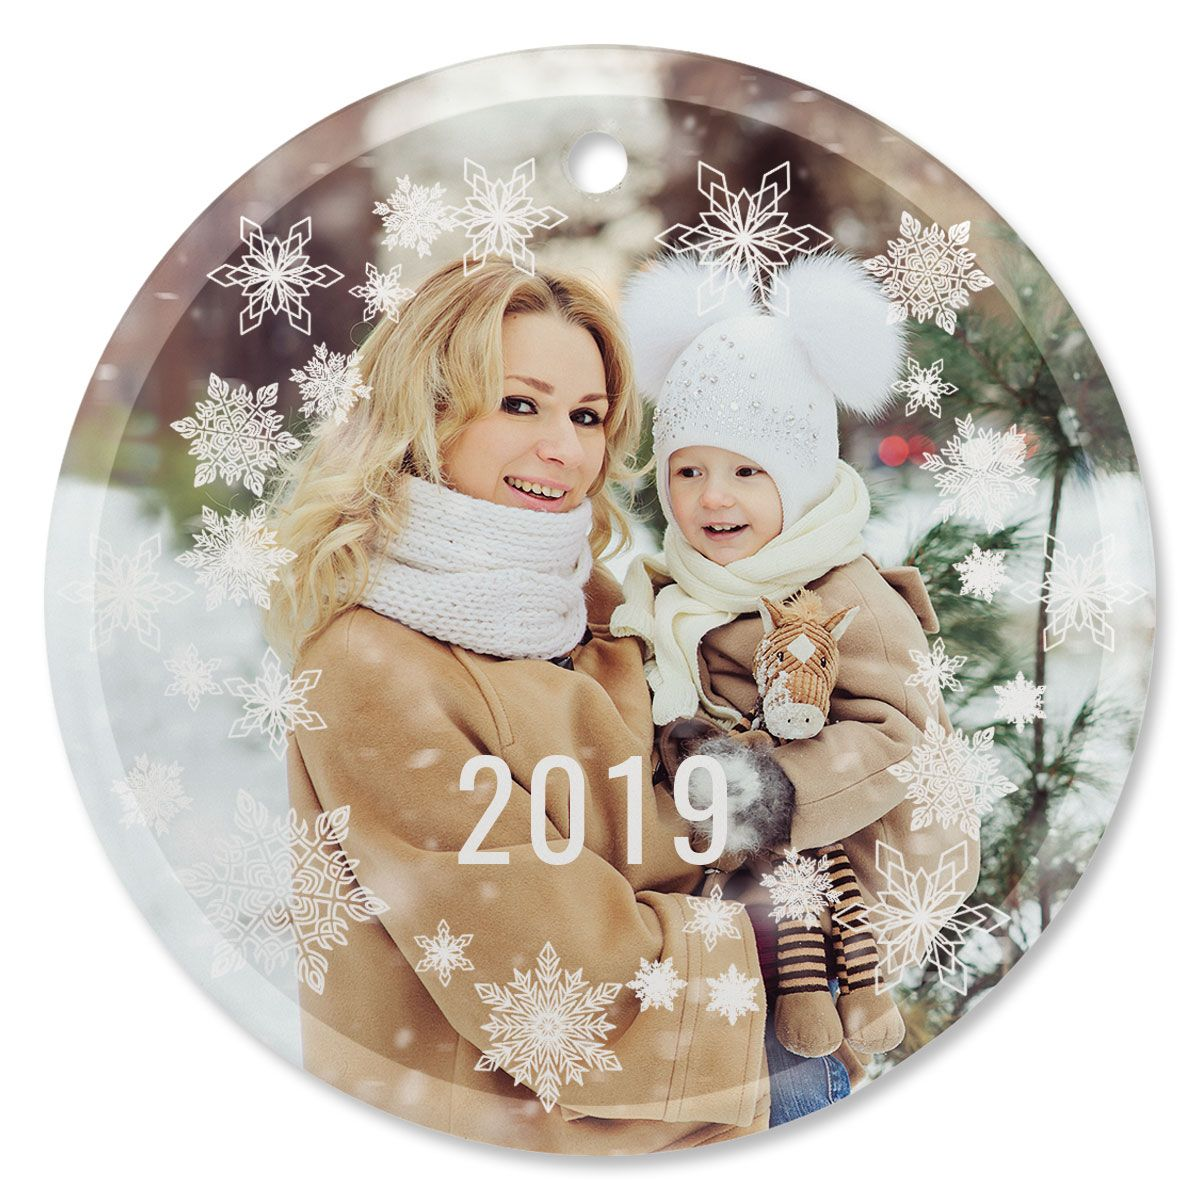 Snowflake Personalized Photo Ornament - Glass Round